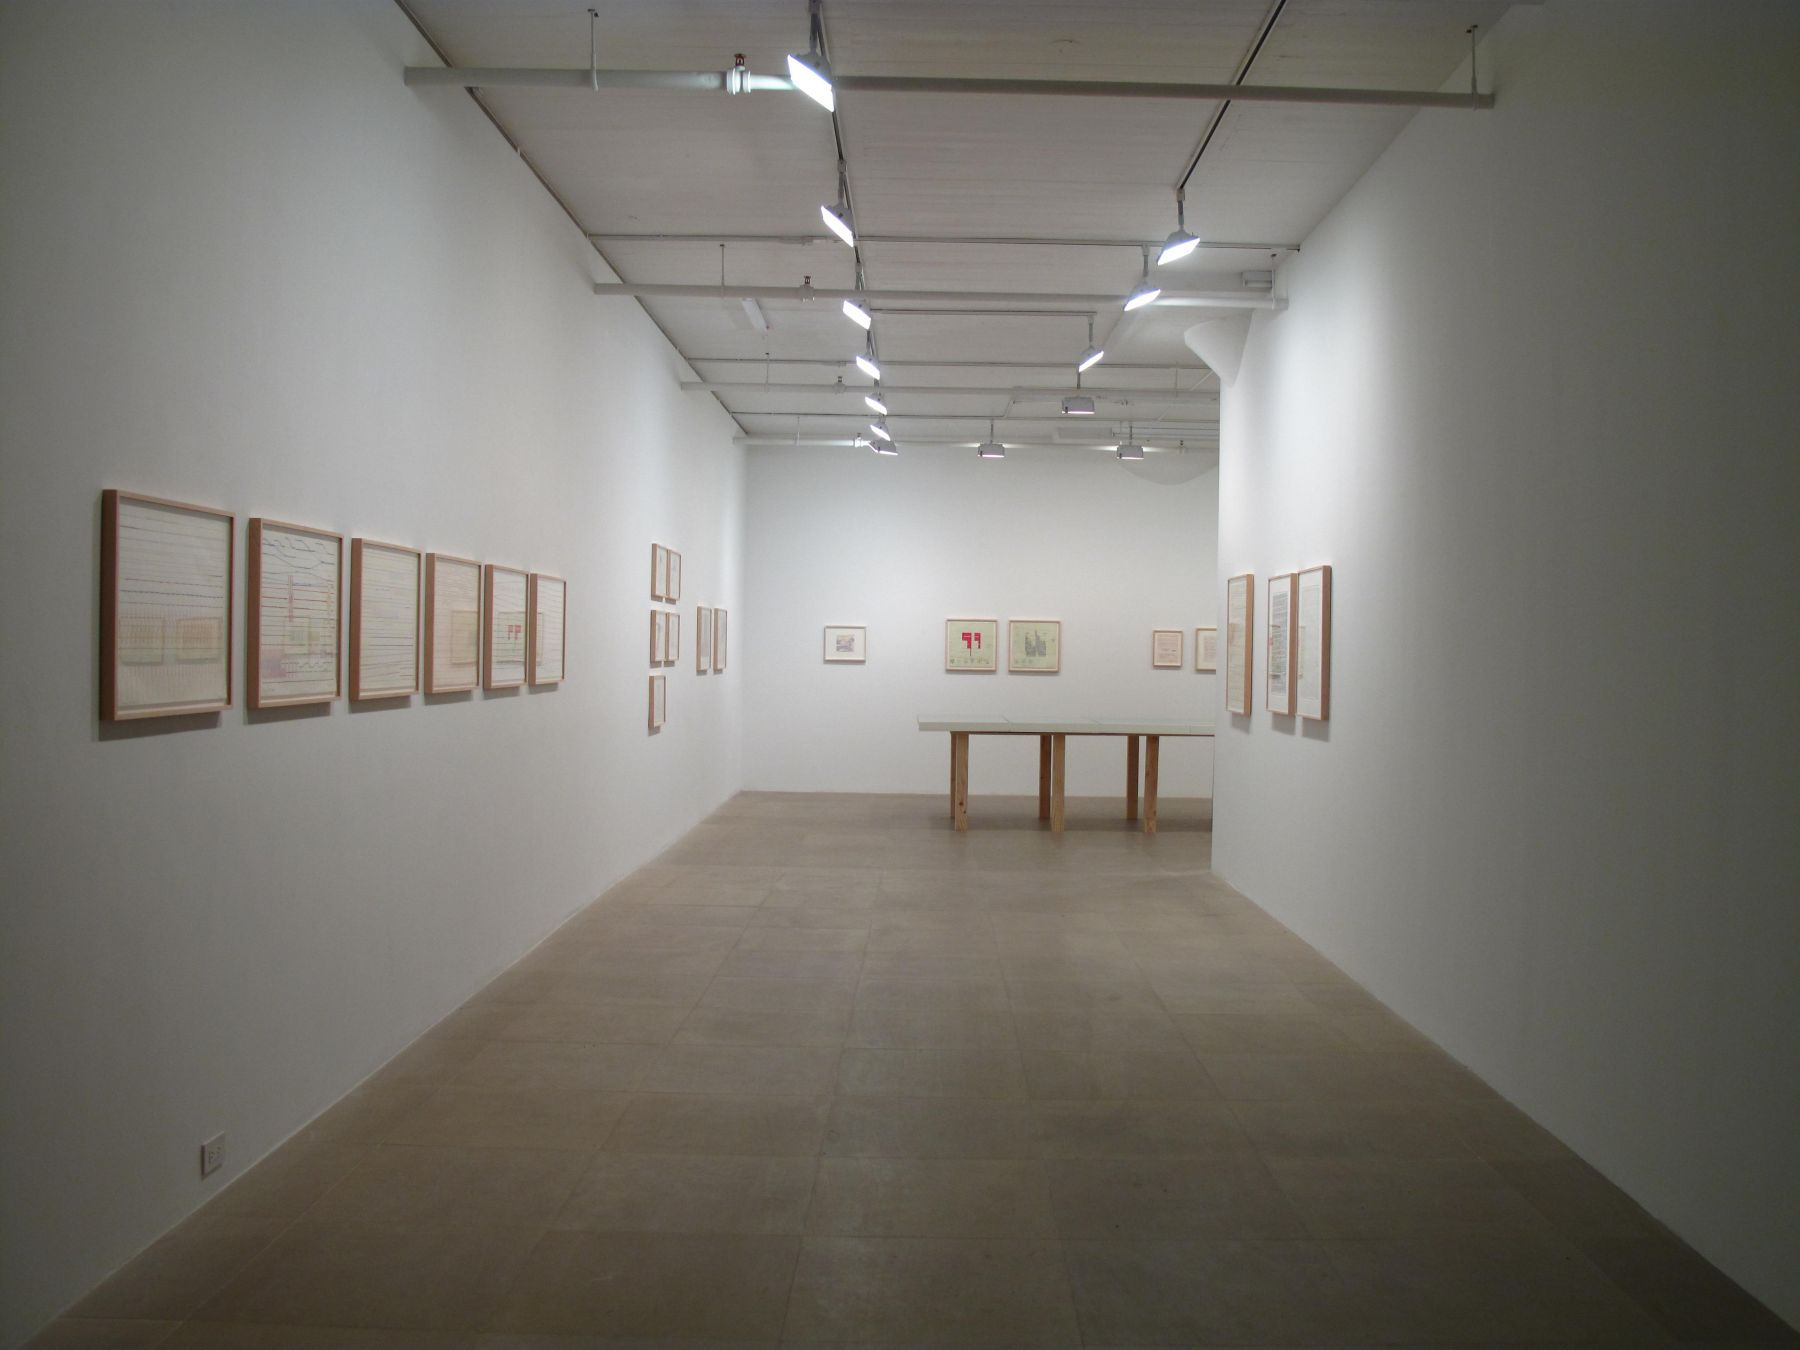 Installation view, Greene Naftali, New York, 2009